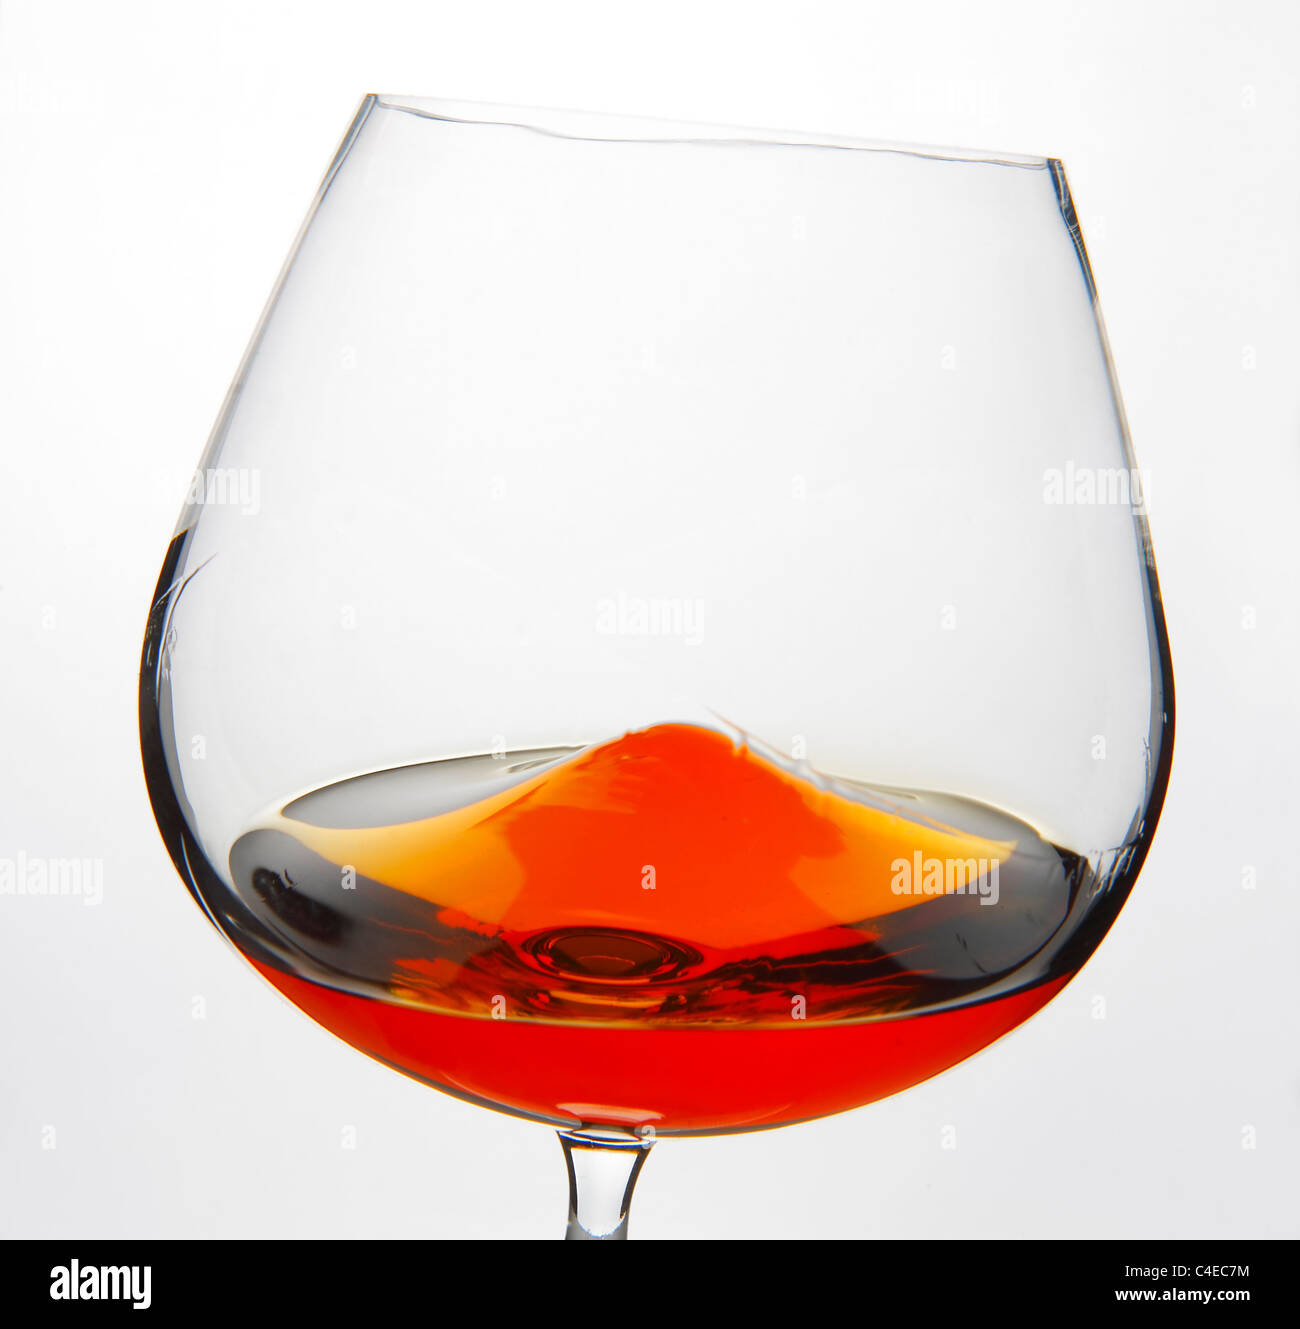 Cognac Snifter glass with liquid inside - Stock Image